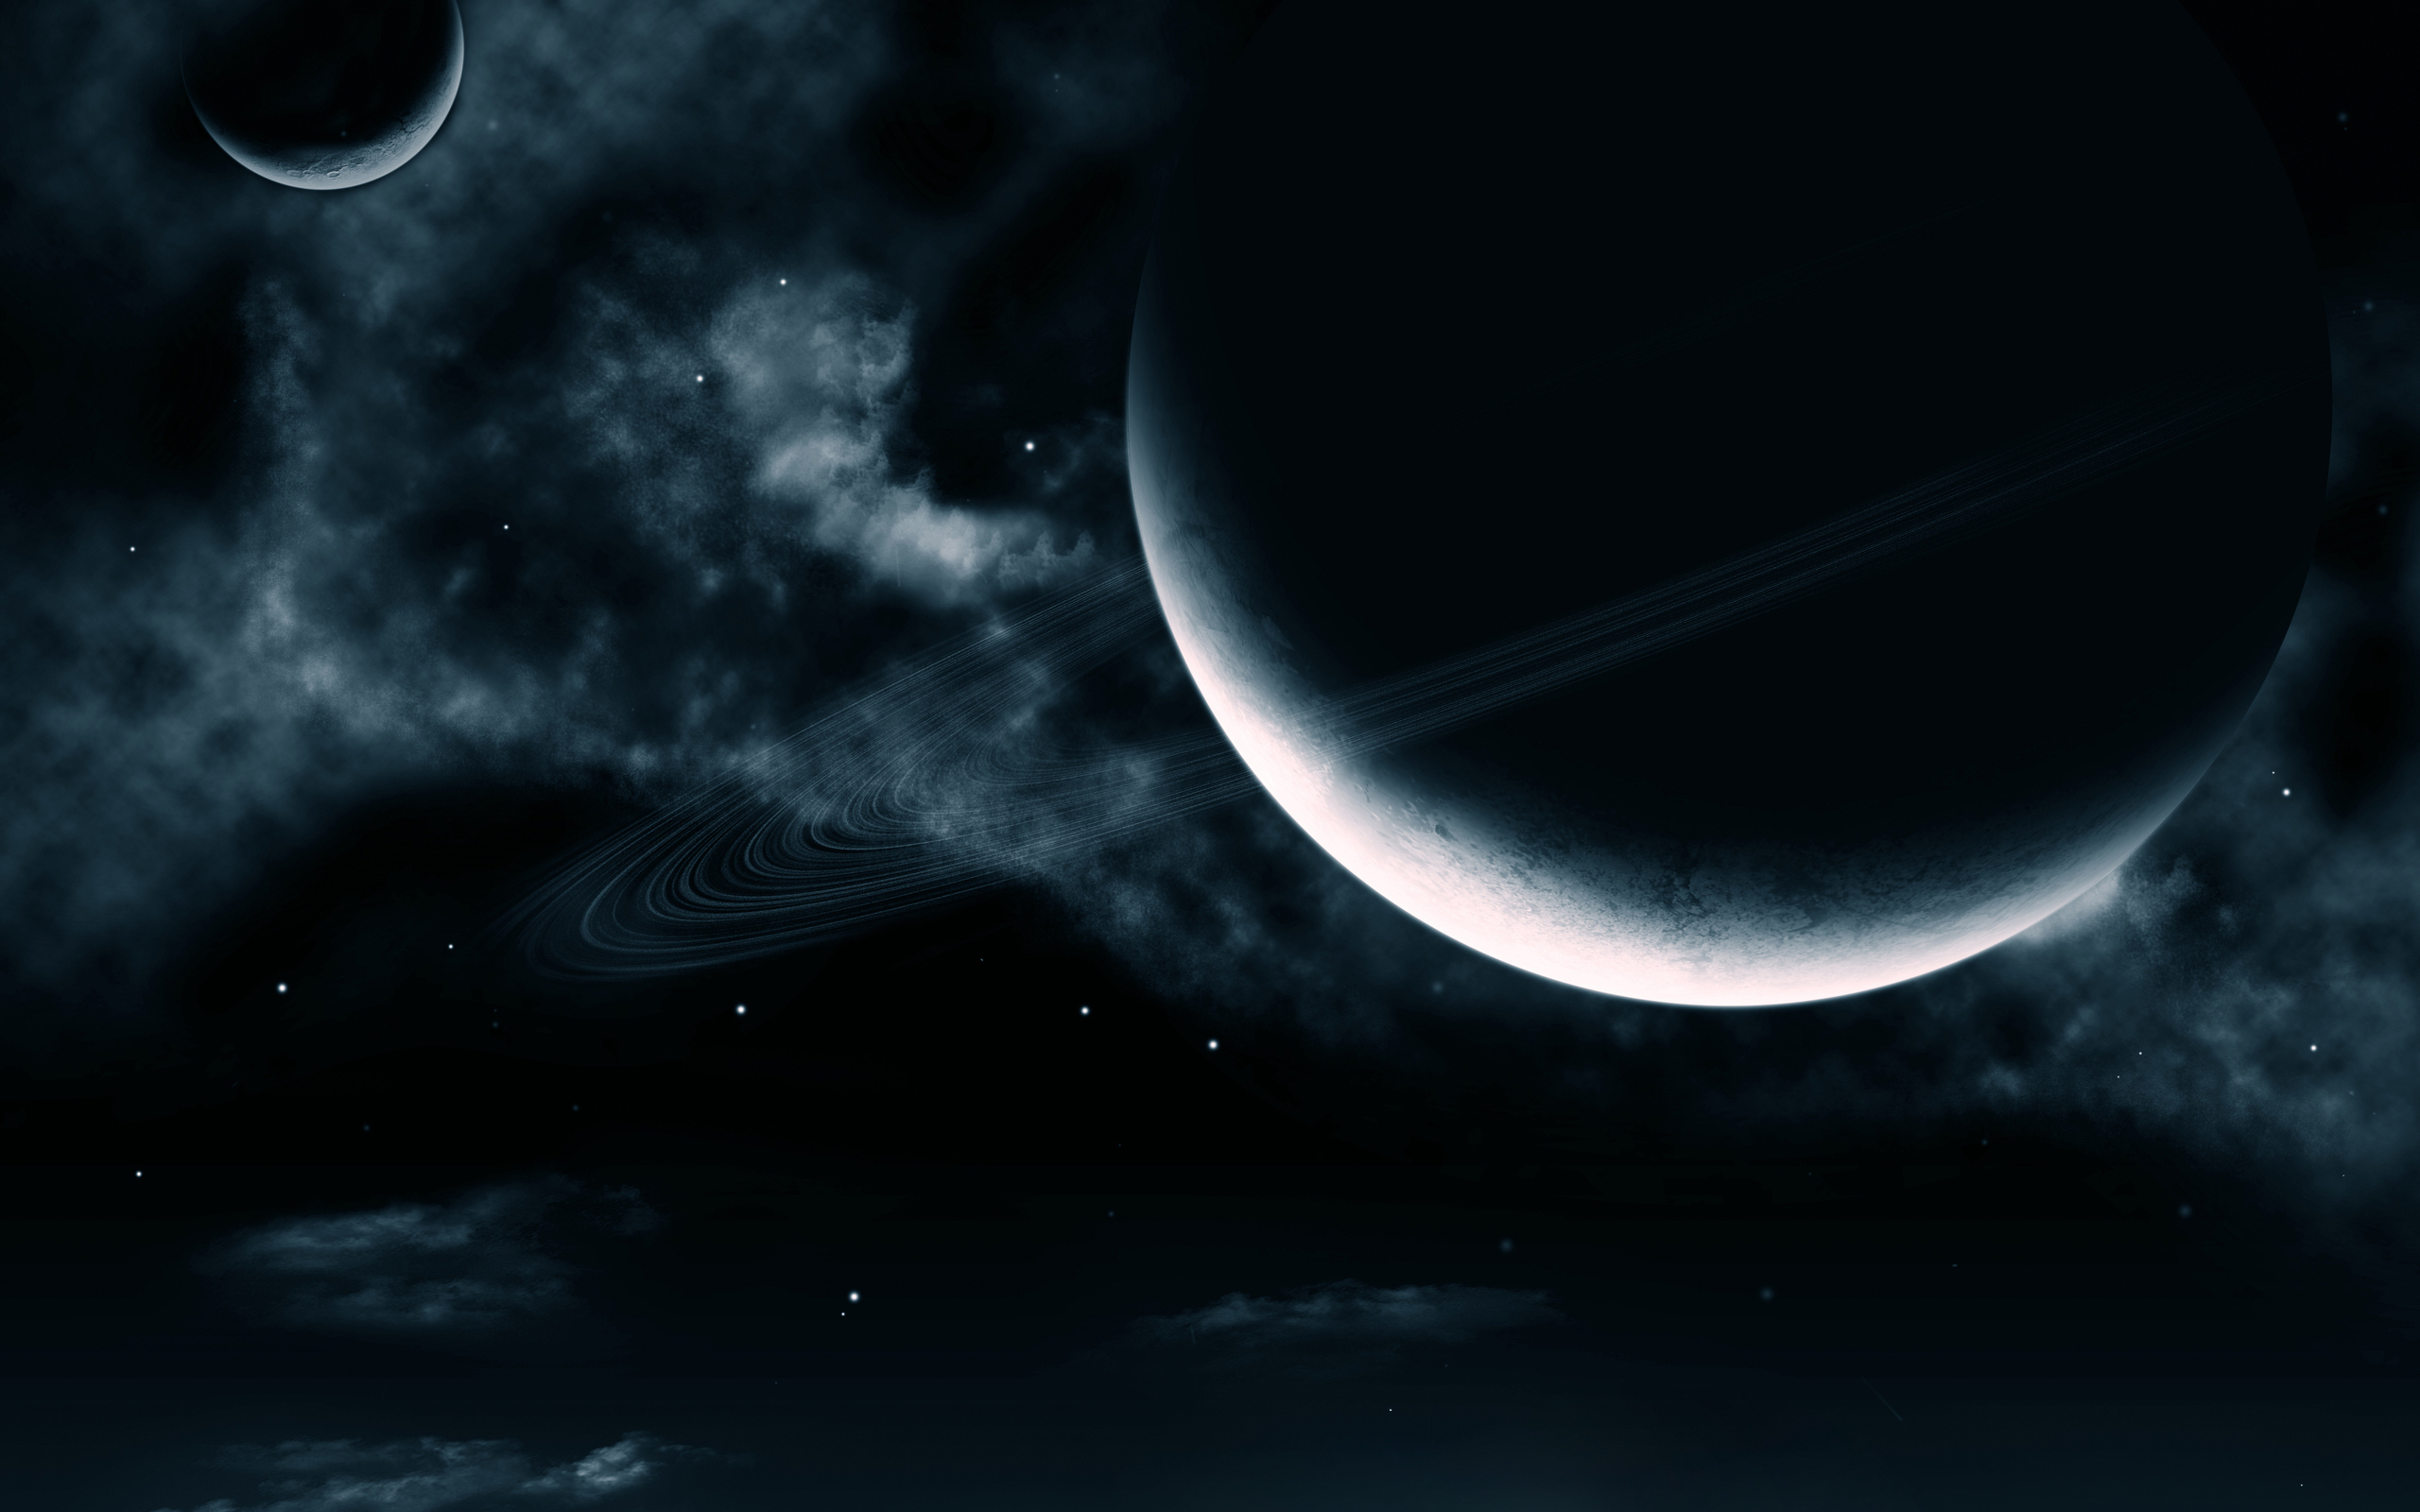 Dark space wallpaper wallpapersafari - Dark space hd ...